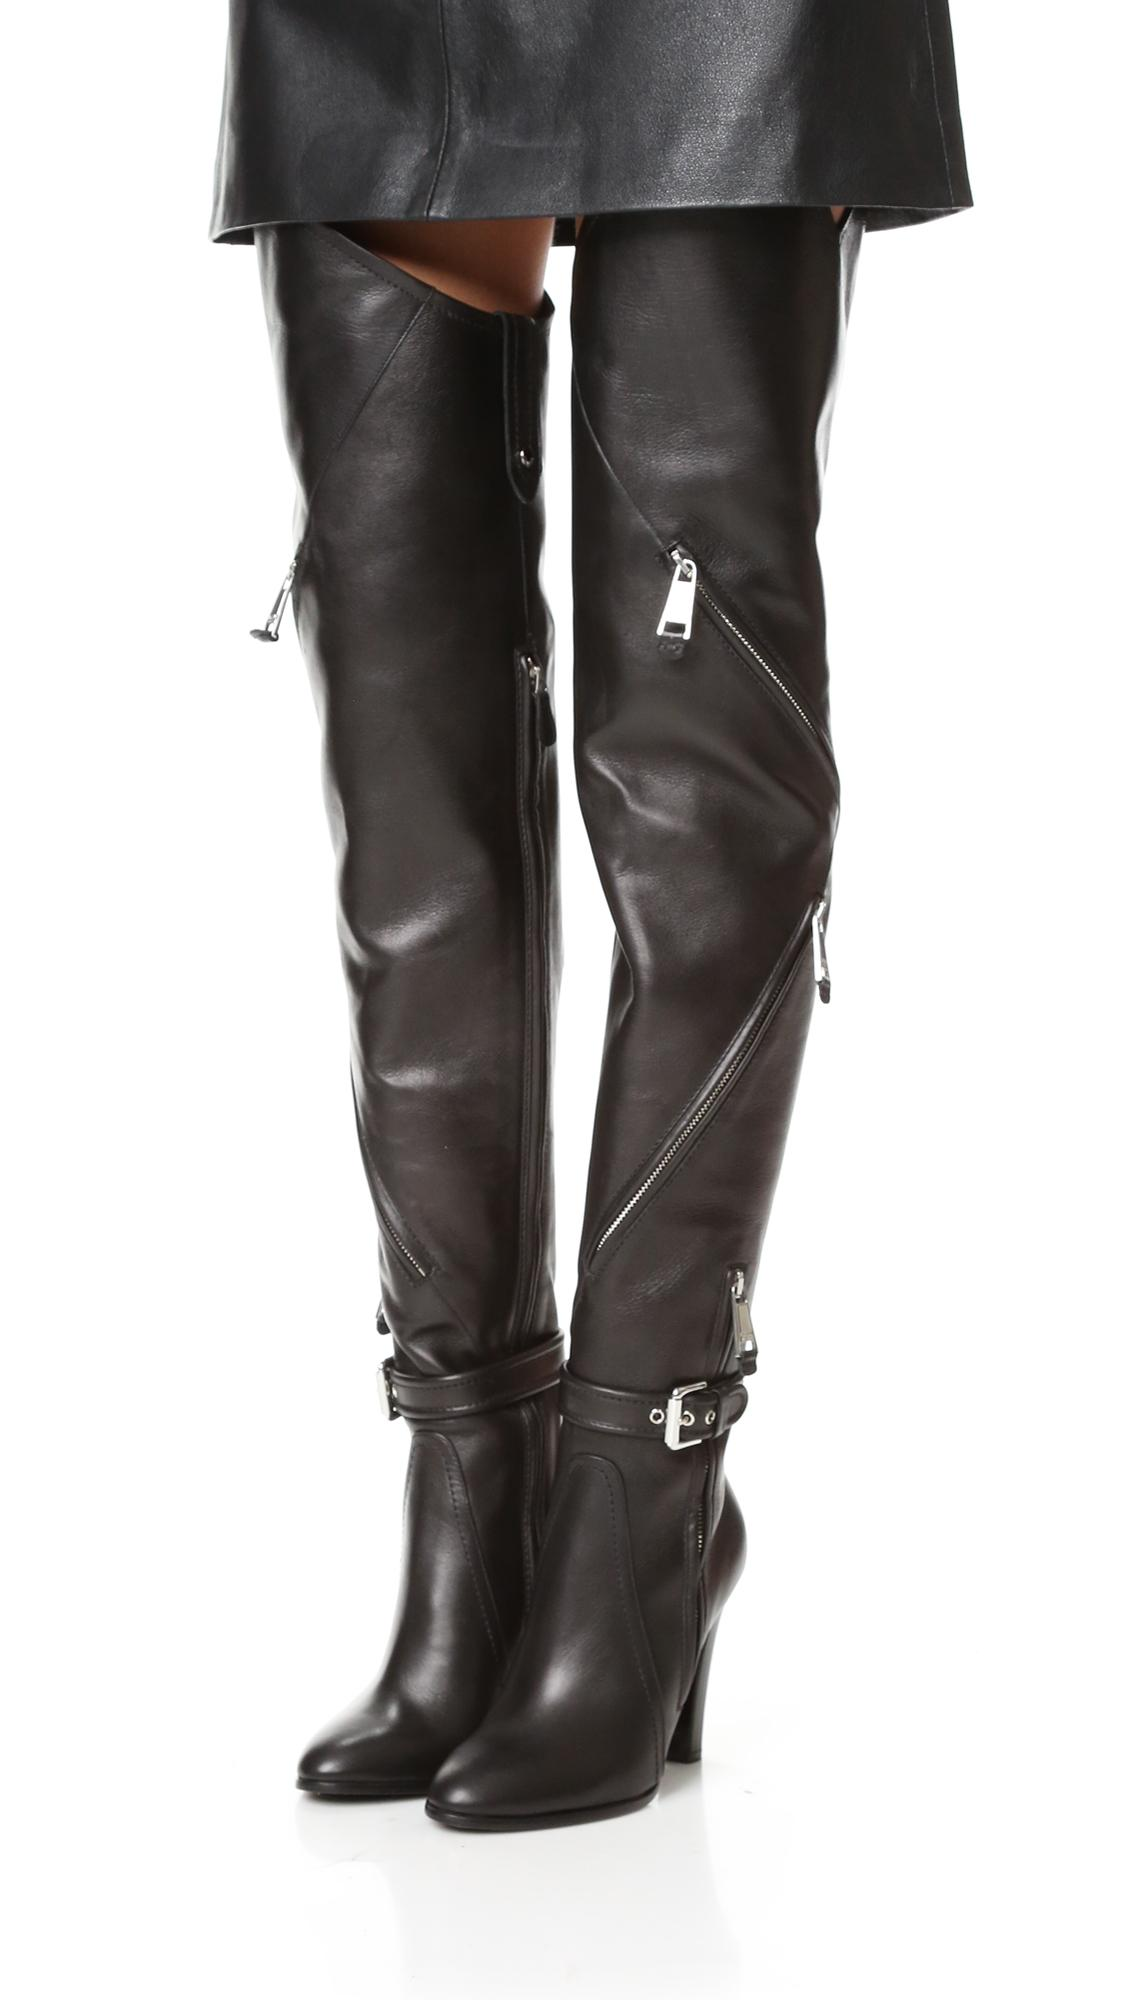 36b137cb320 Lyst - Moschino Over The Knee Boots in Black